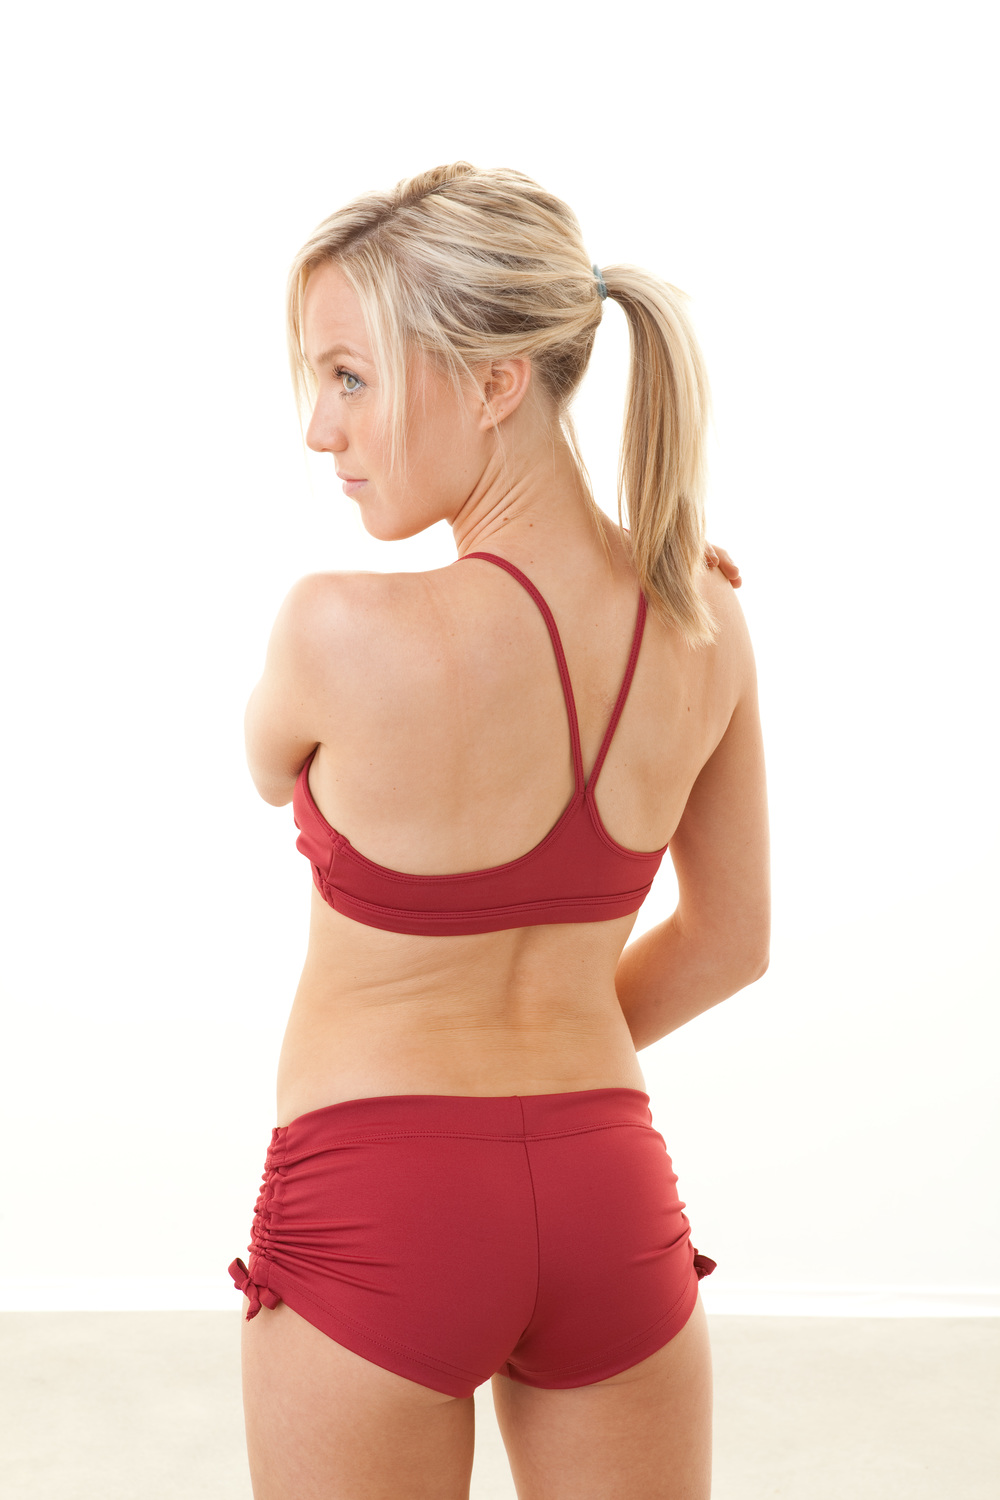 Kila Hot Yoga Bra Top